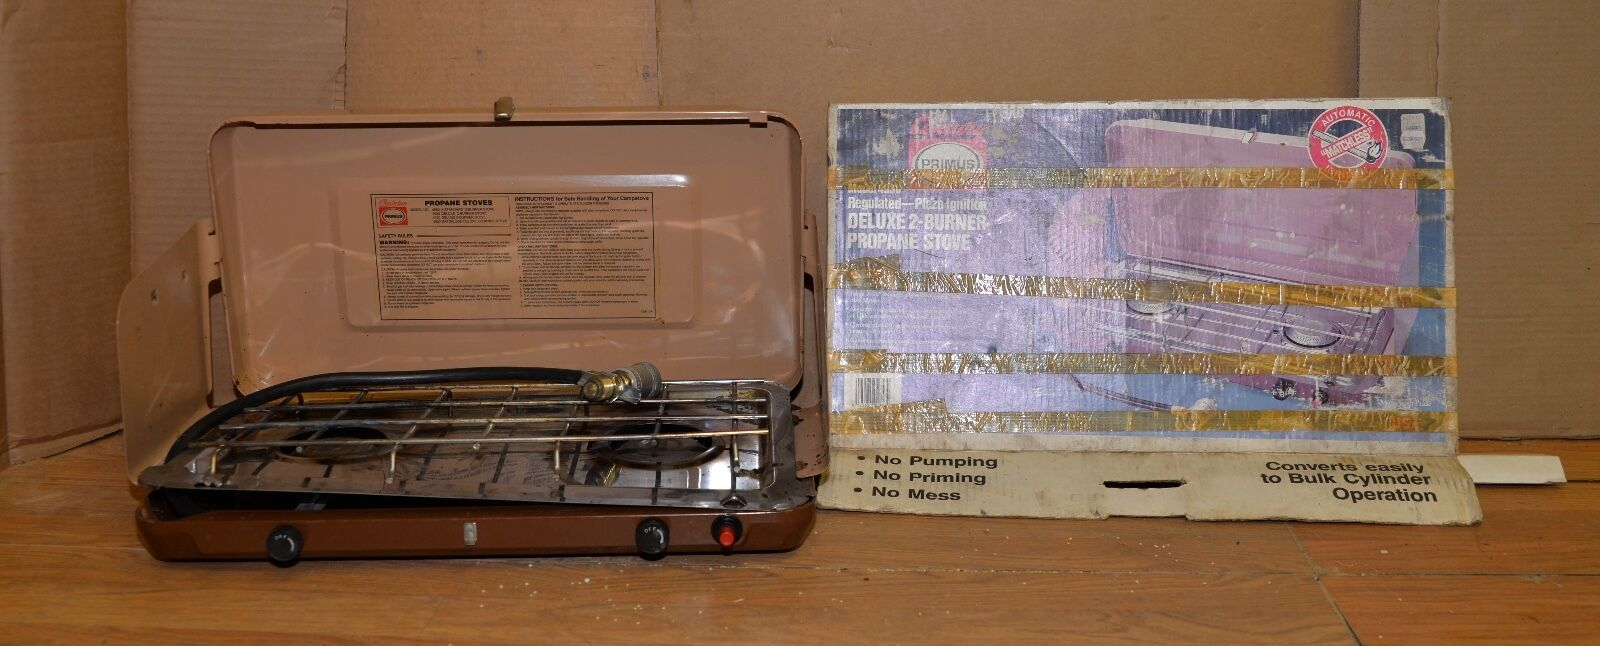 Rare Primus model 4930  matchless deluxe 2 burner stove van camper camping tool  the lowest price